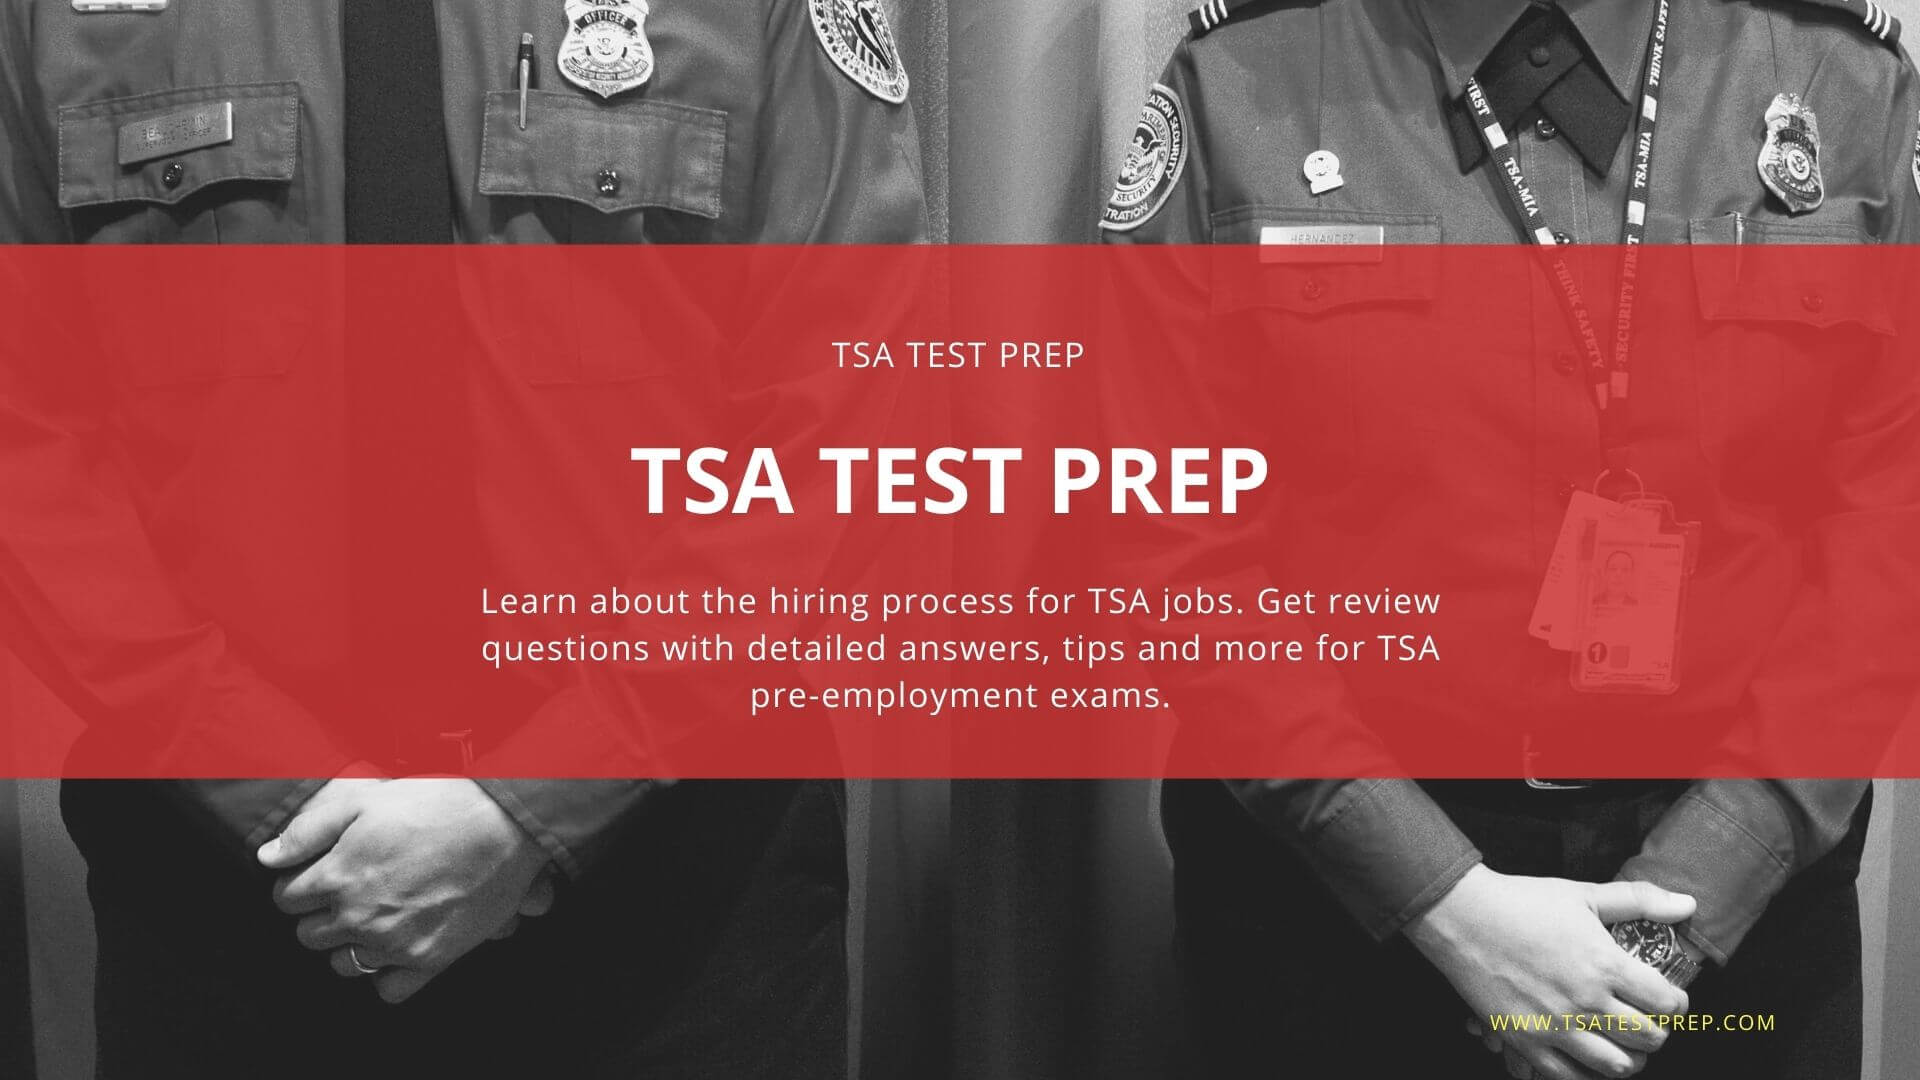 Learn about the organization, the different jobs you can have, the application process, and how to excel on the TSA CBT exams.